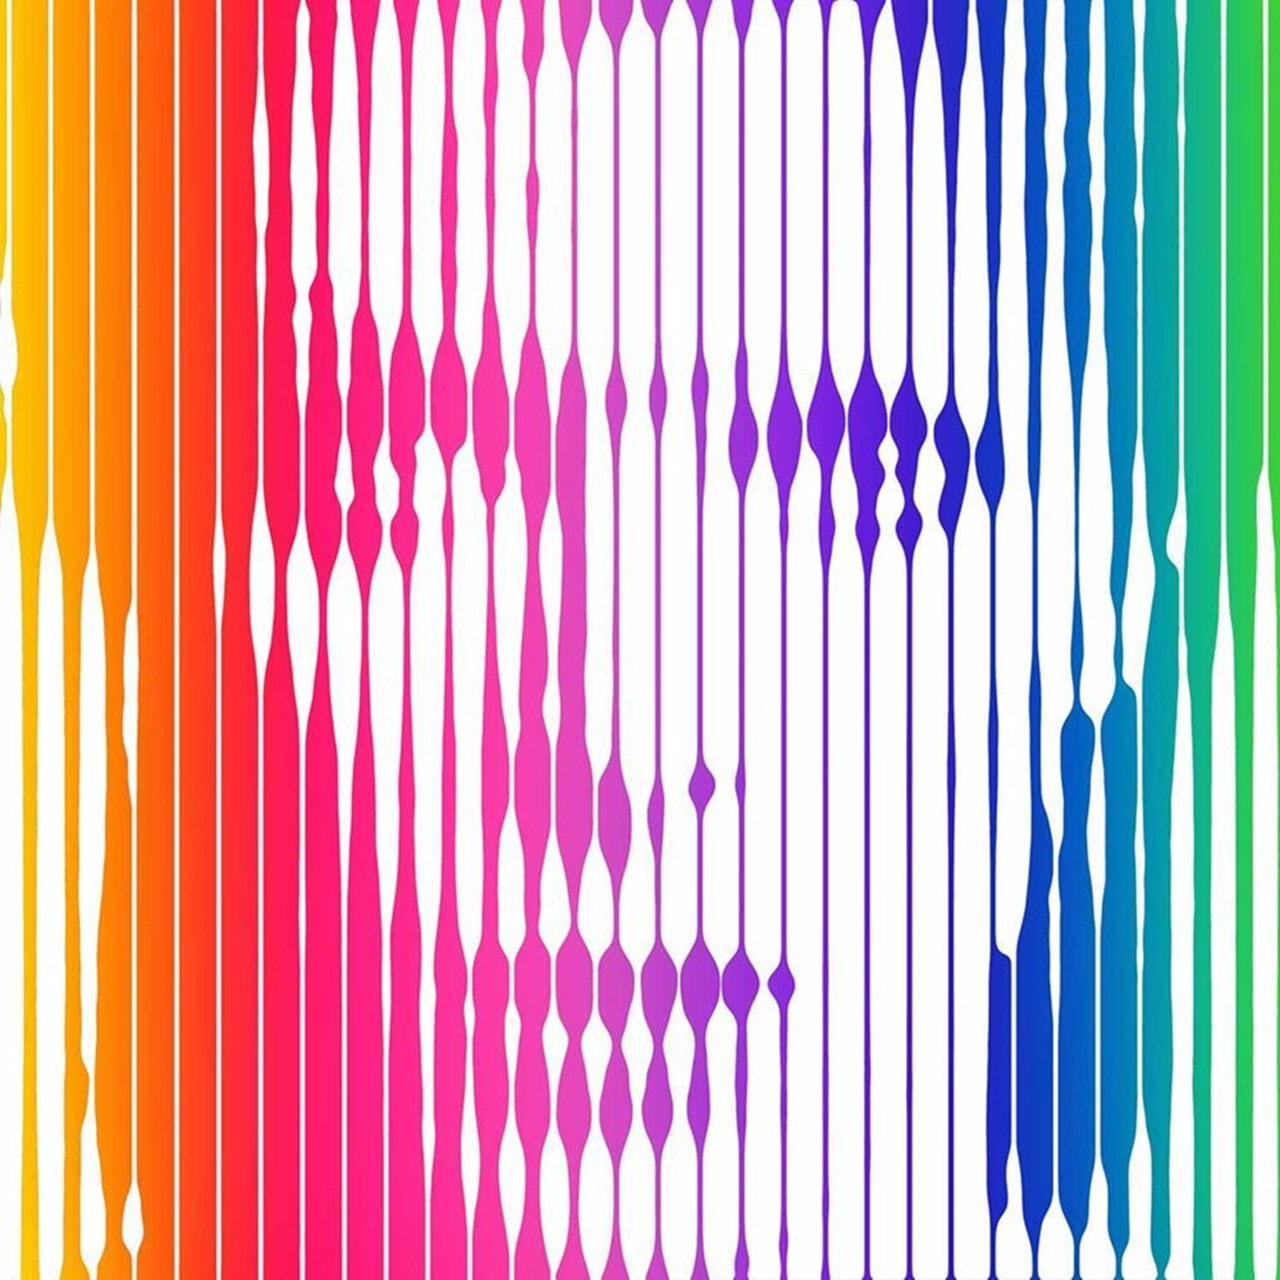 David Bowie: Rainbow: Limited Edition Fine Art Print By Veebee - 1